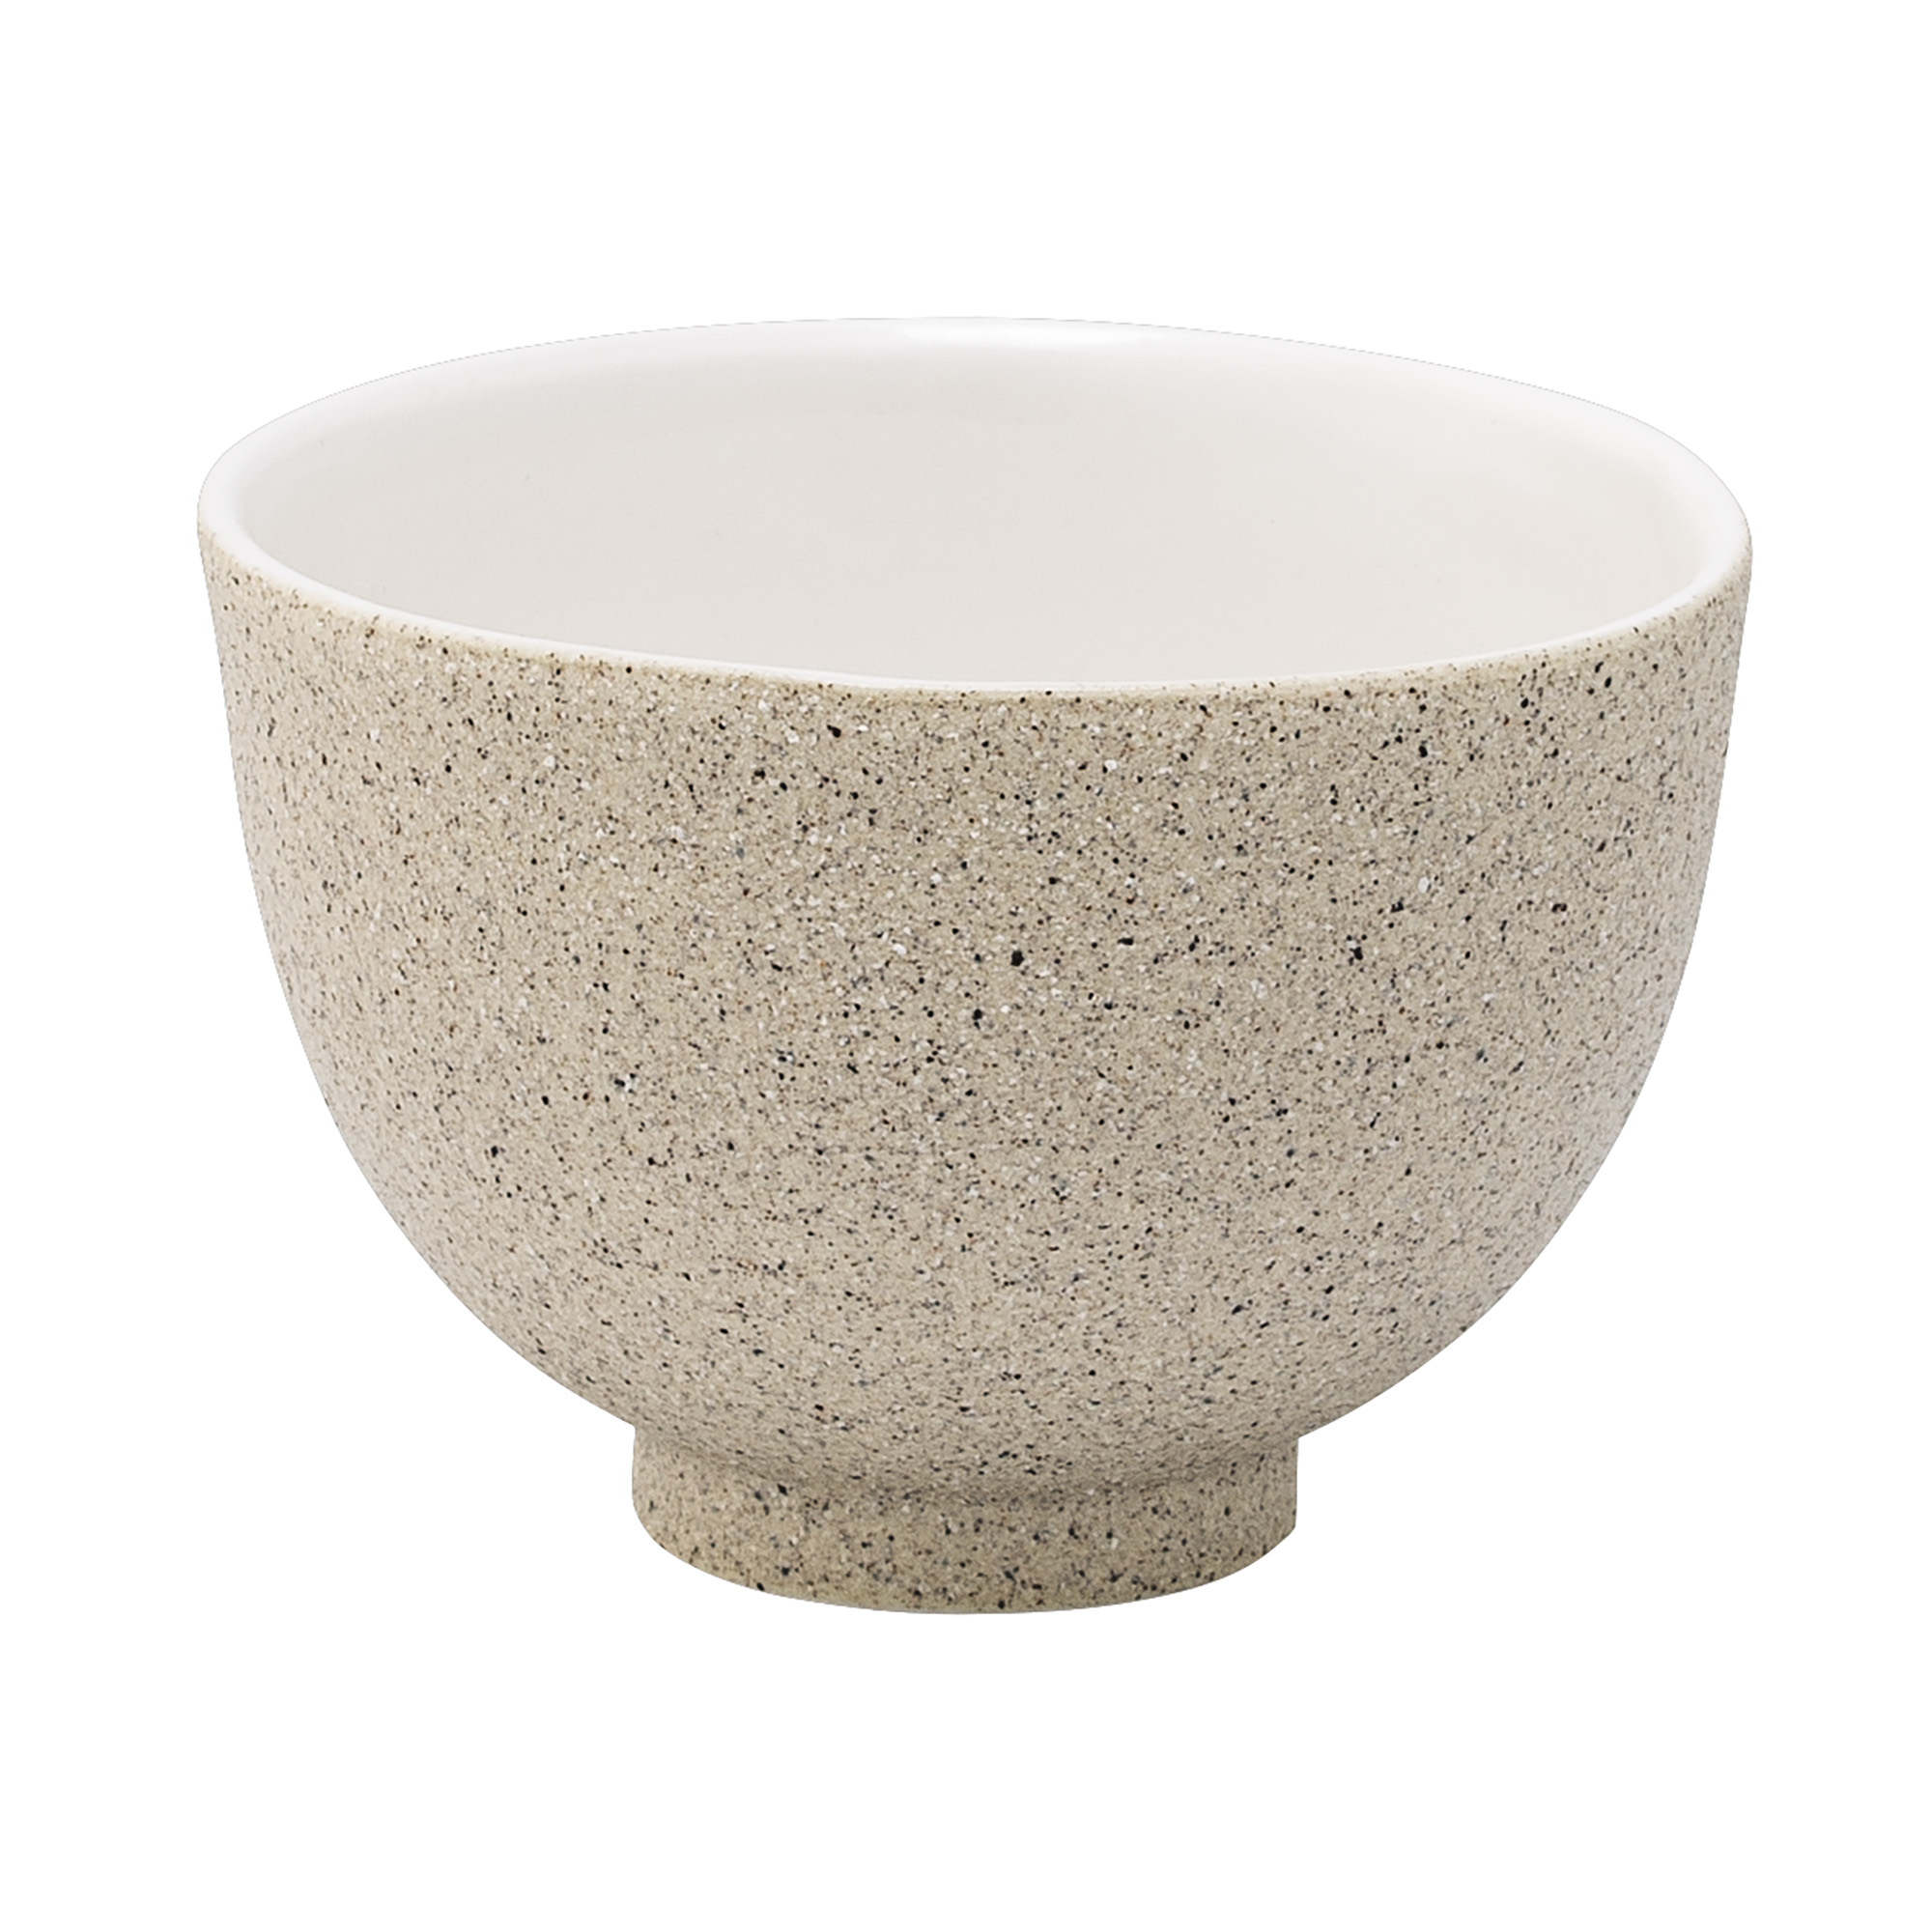 Image of   Sui bowl, nature, stoneware